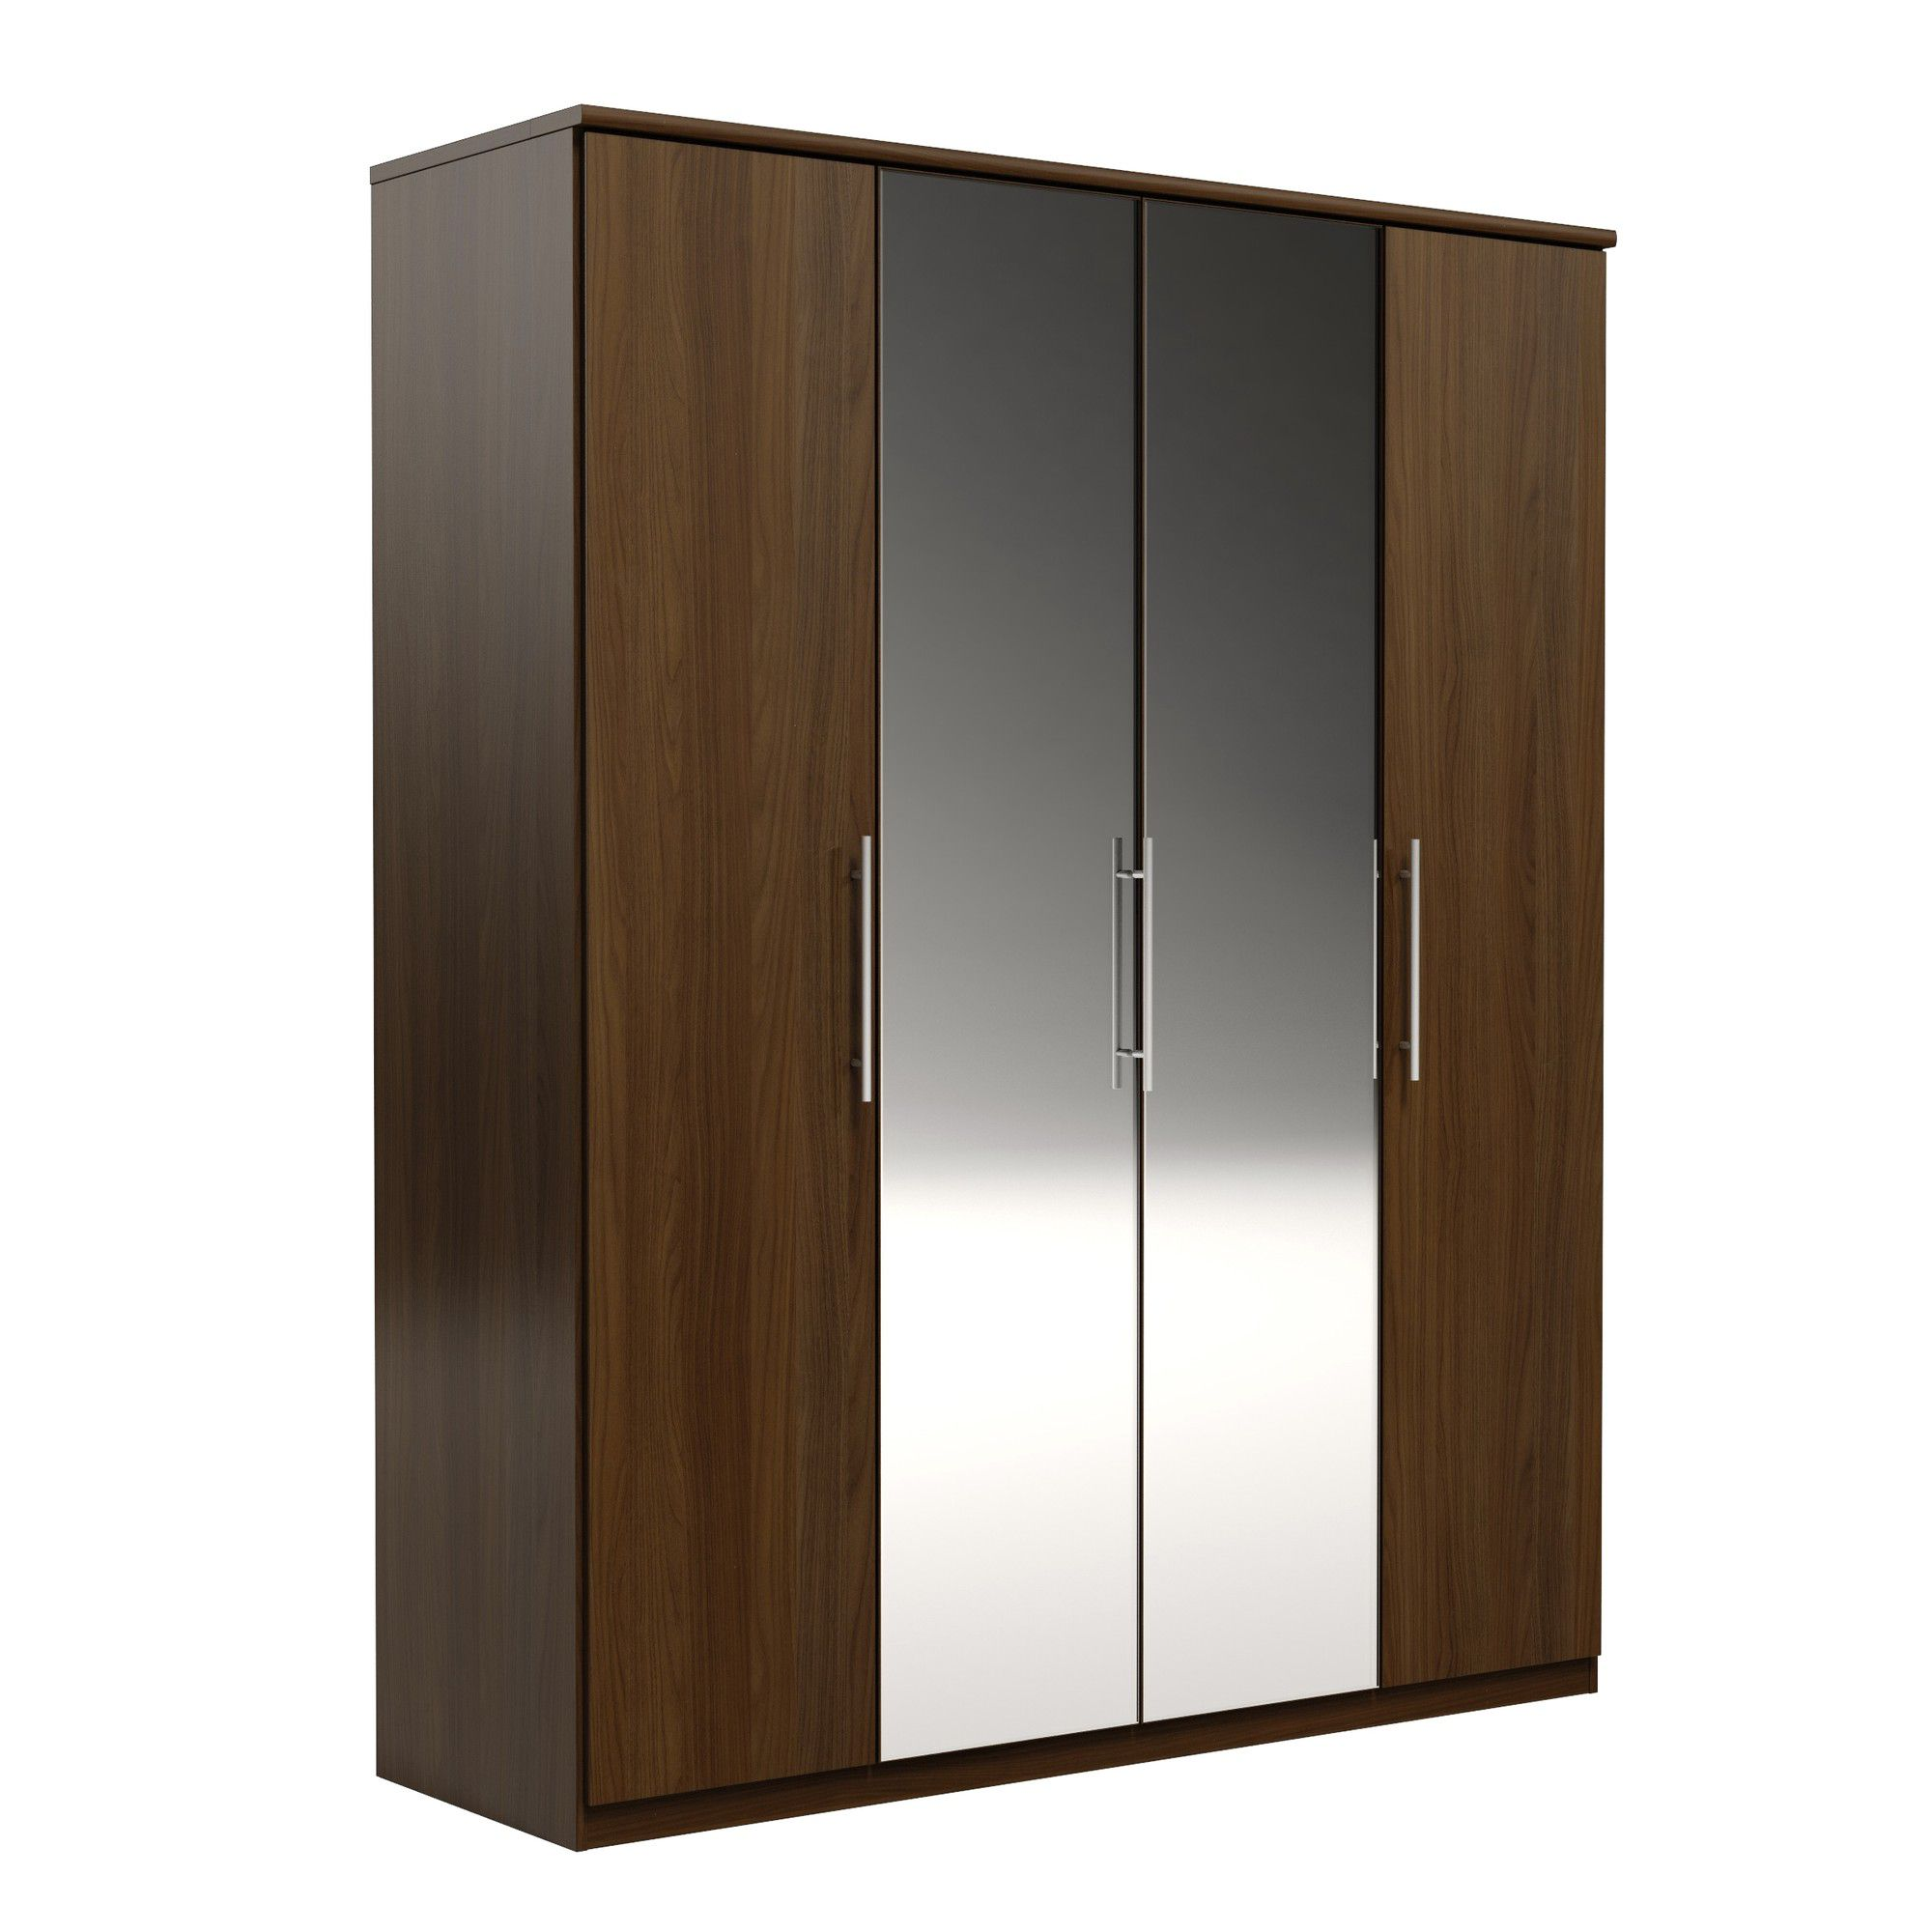 Urbane Designs Prague 4 Door Wardrobe - Walnut at Tesco Direct